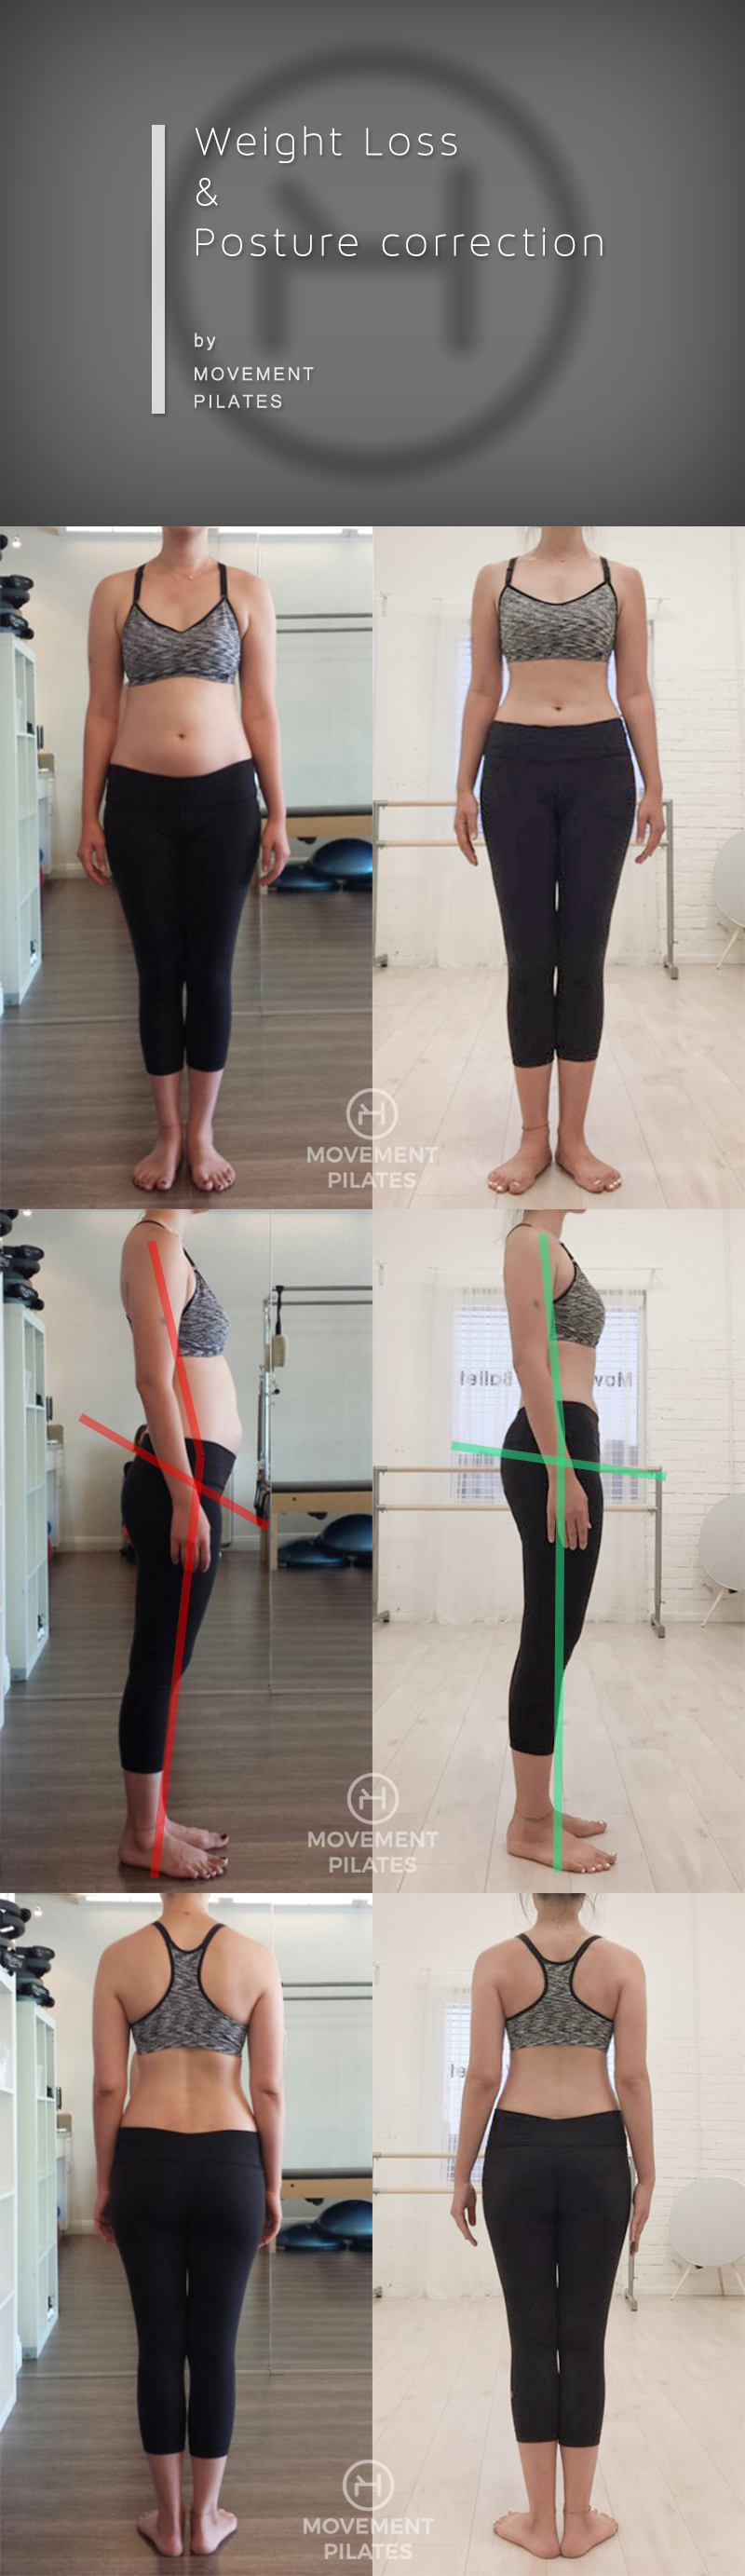 Pilates Weight Loss Before And After : pilates, weight, before, after, Wight, Before, After, MOVEMENT, PILATES